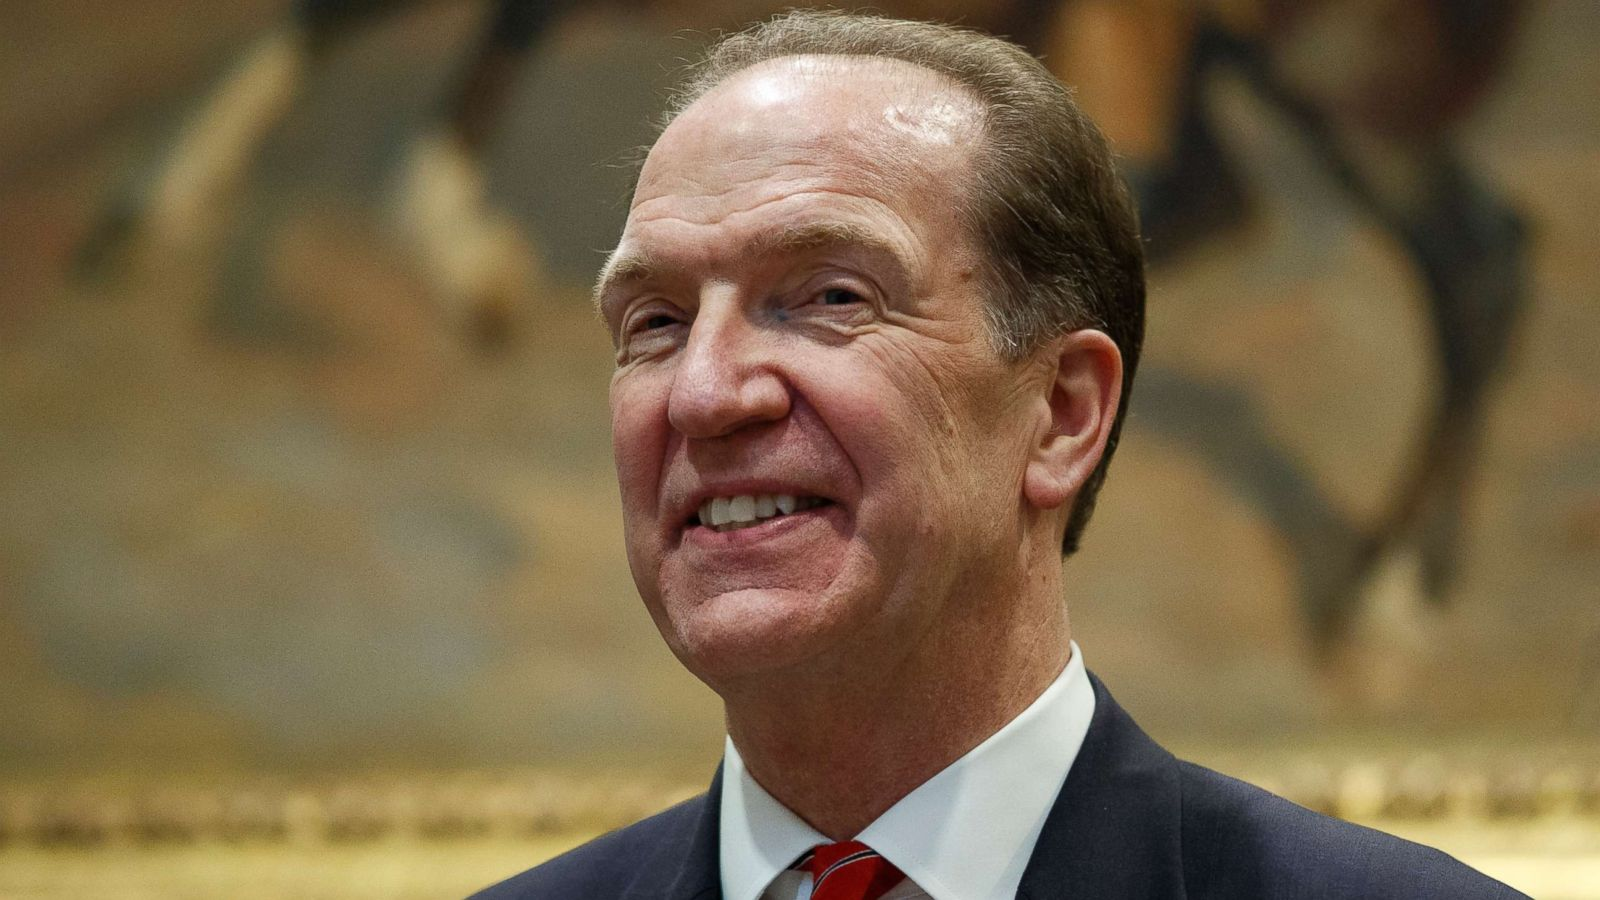 Senior US Treasury official David Malpass selected as President of World Bank